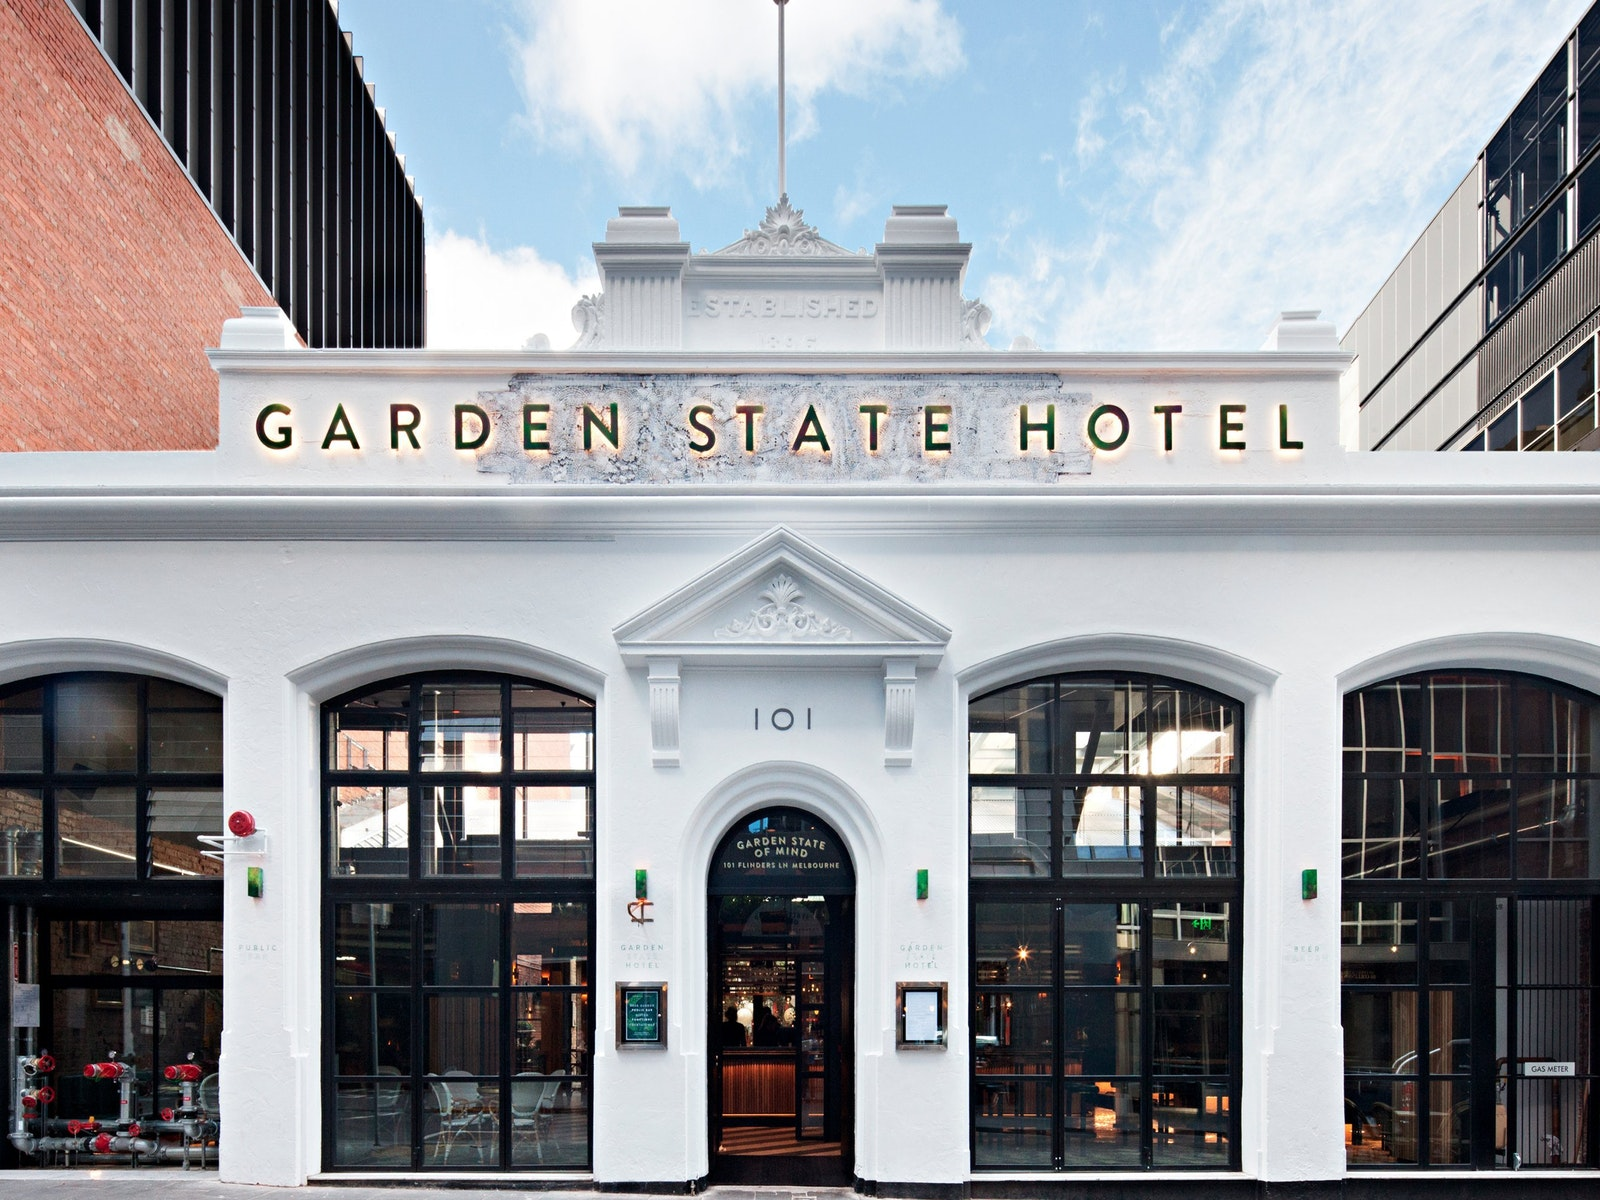 Entrance to Garden State Hotel